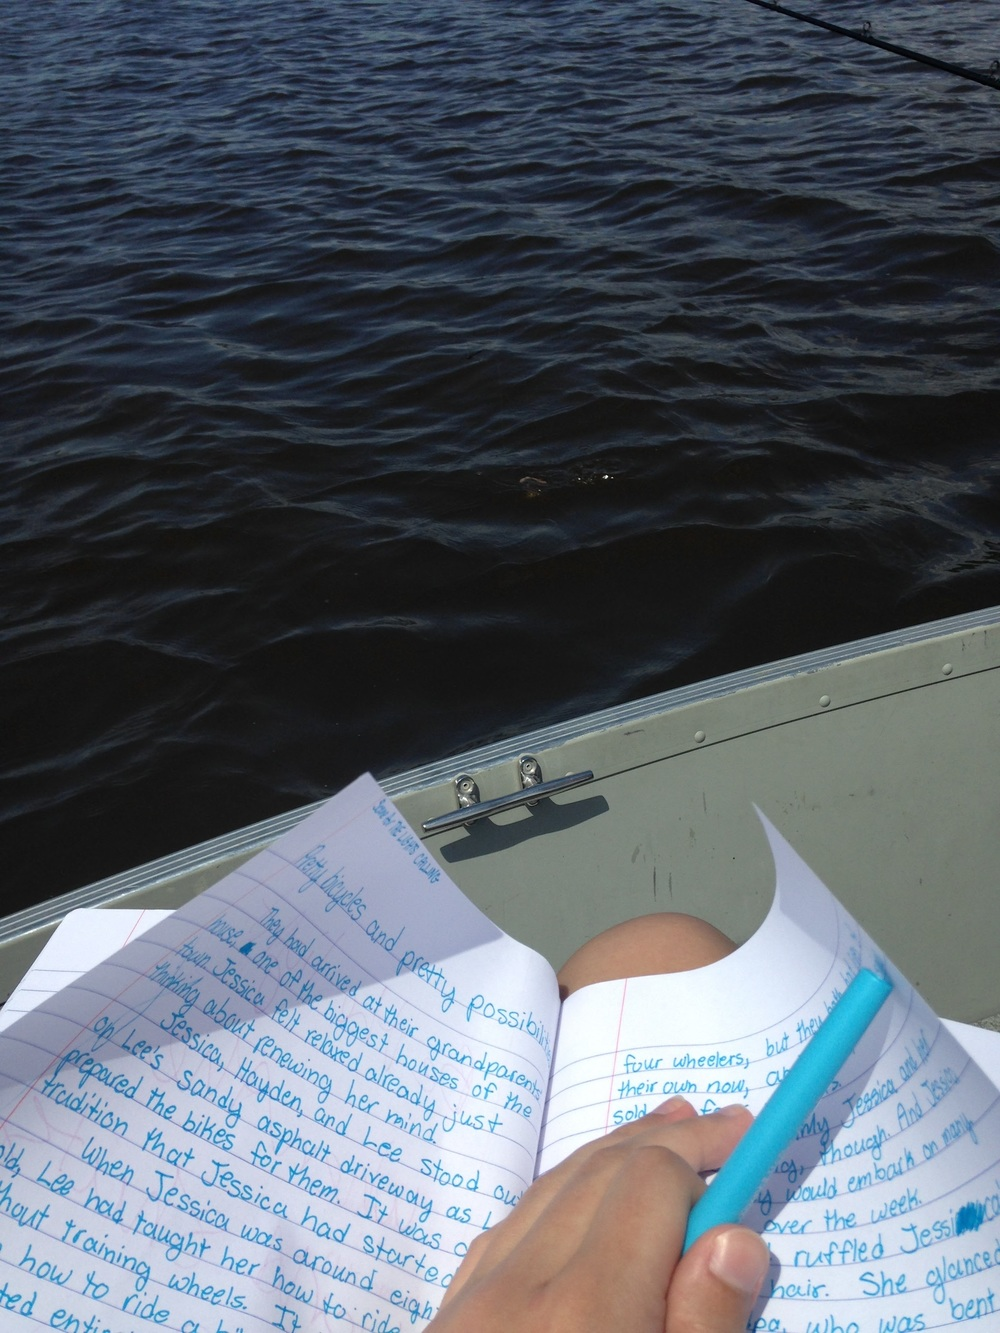 Ashlee-Writing-on-a-Boat.jpg